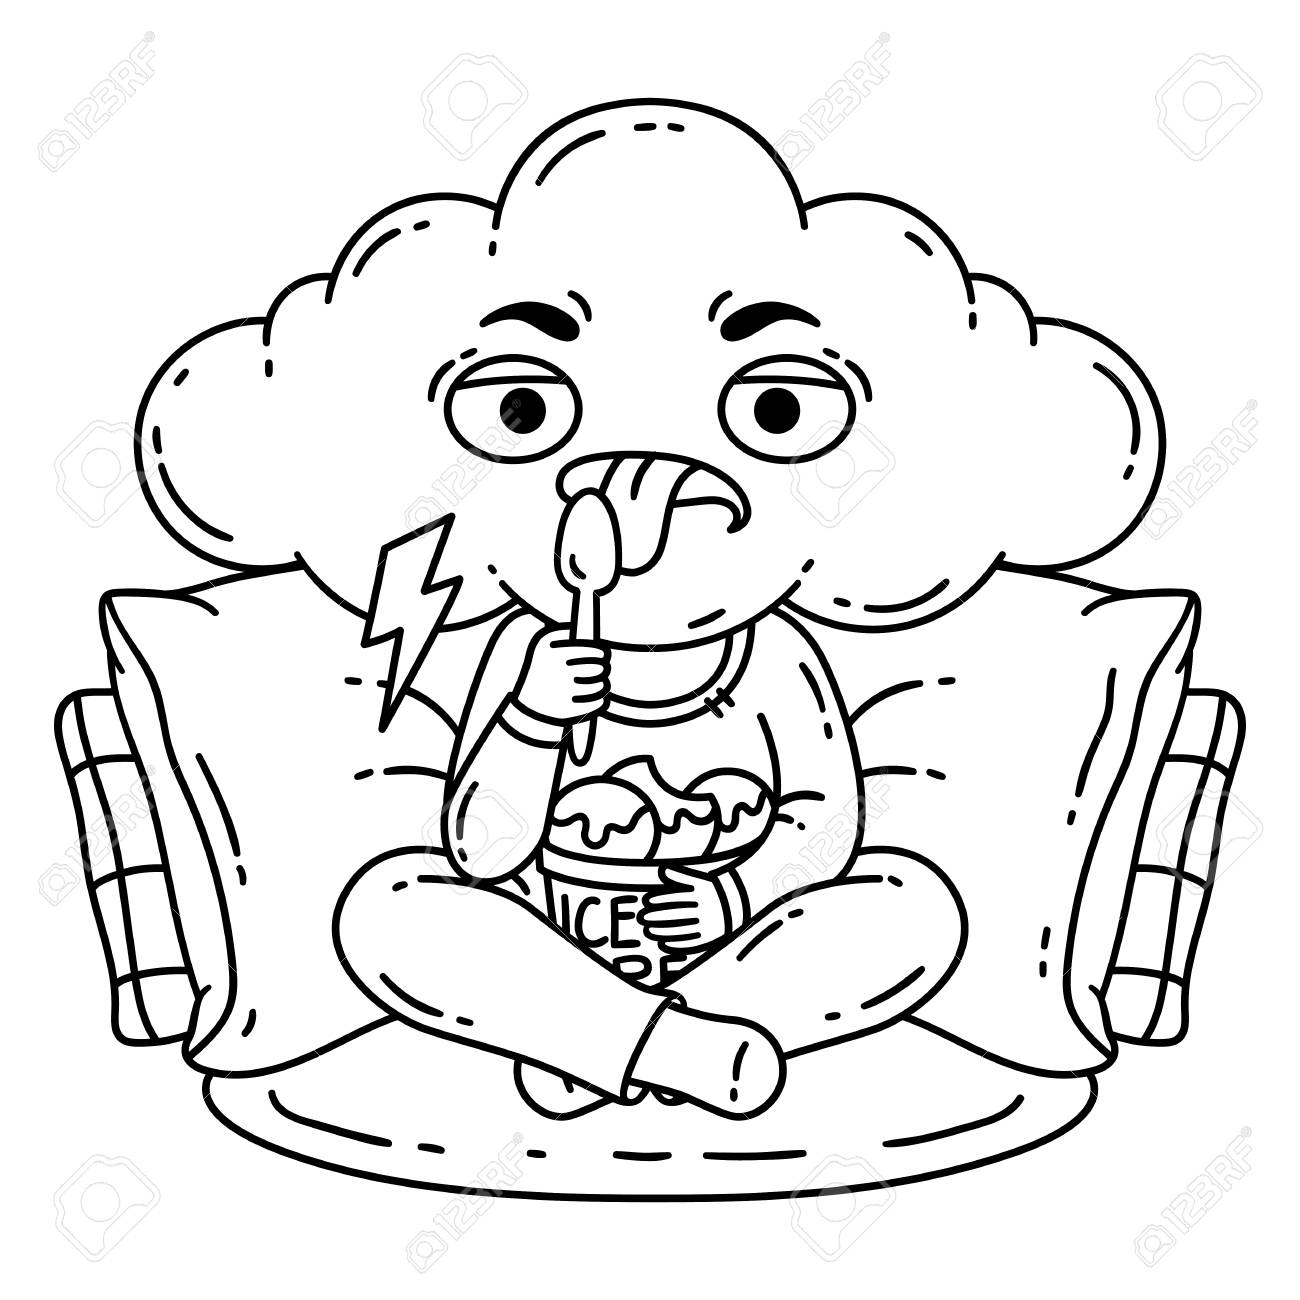 Frustrated Bad Mood Person Eat Ice Cream Illustration For Coloring Pages Outline